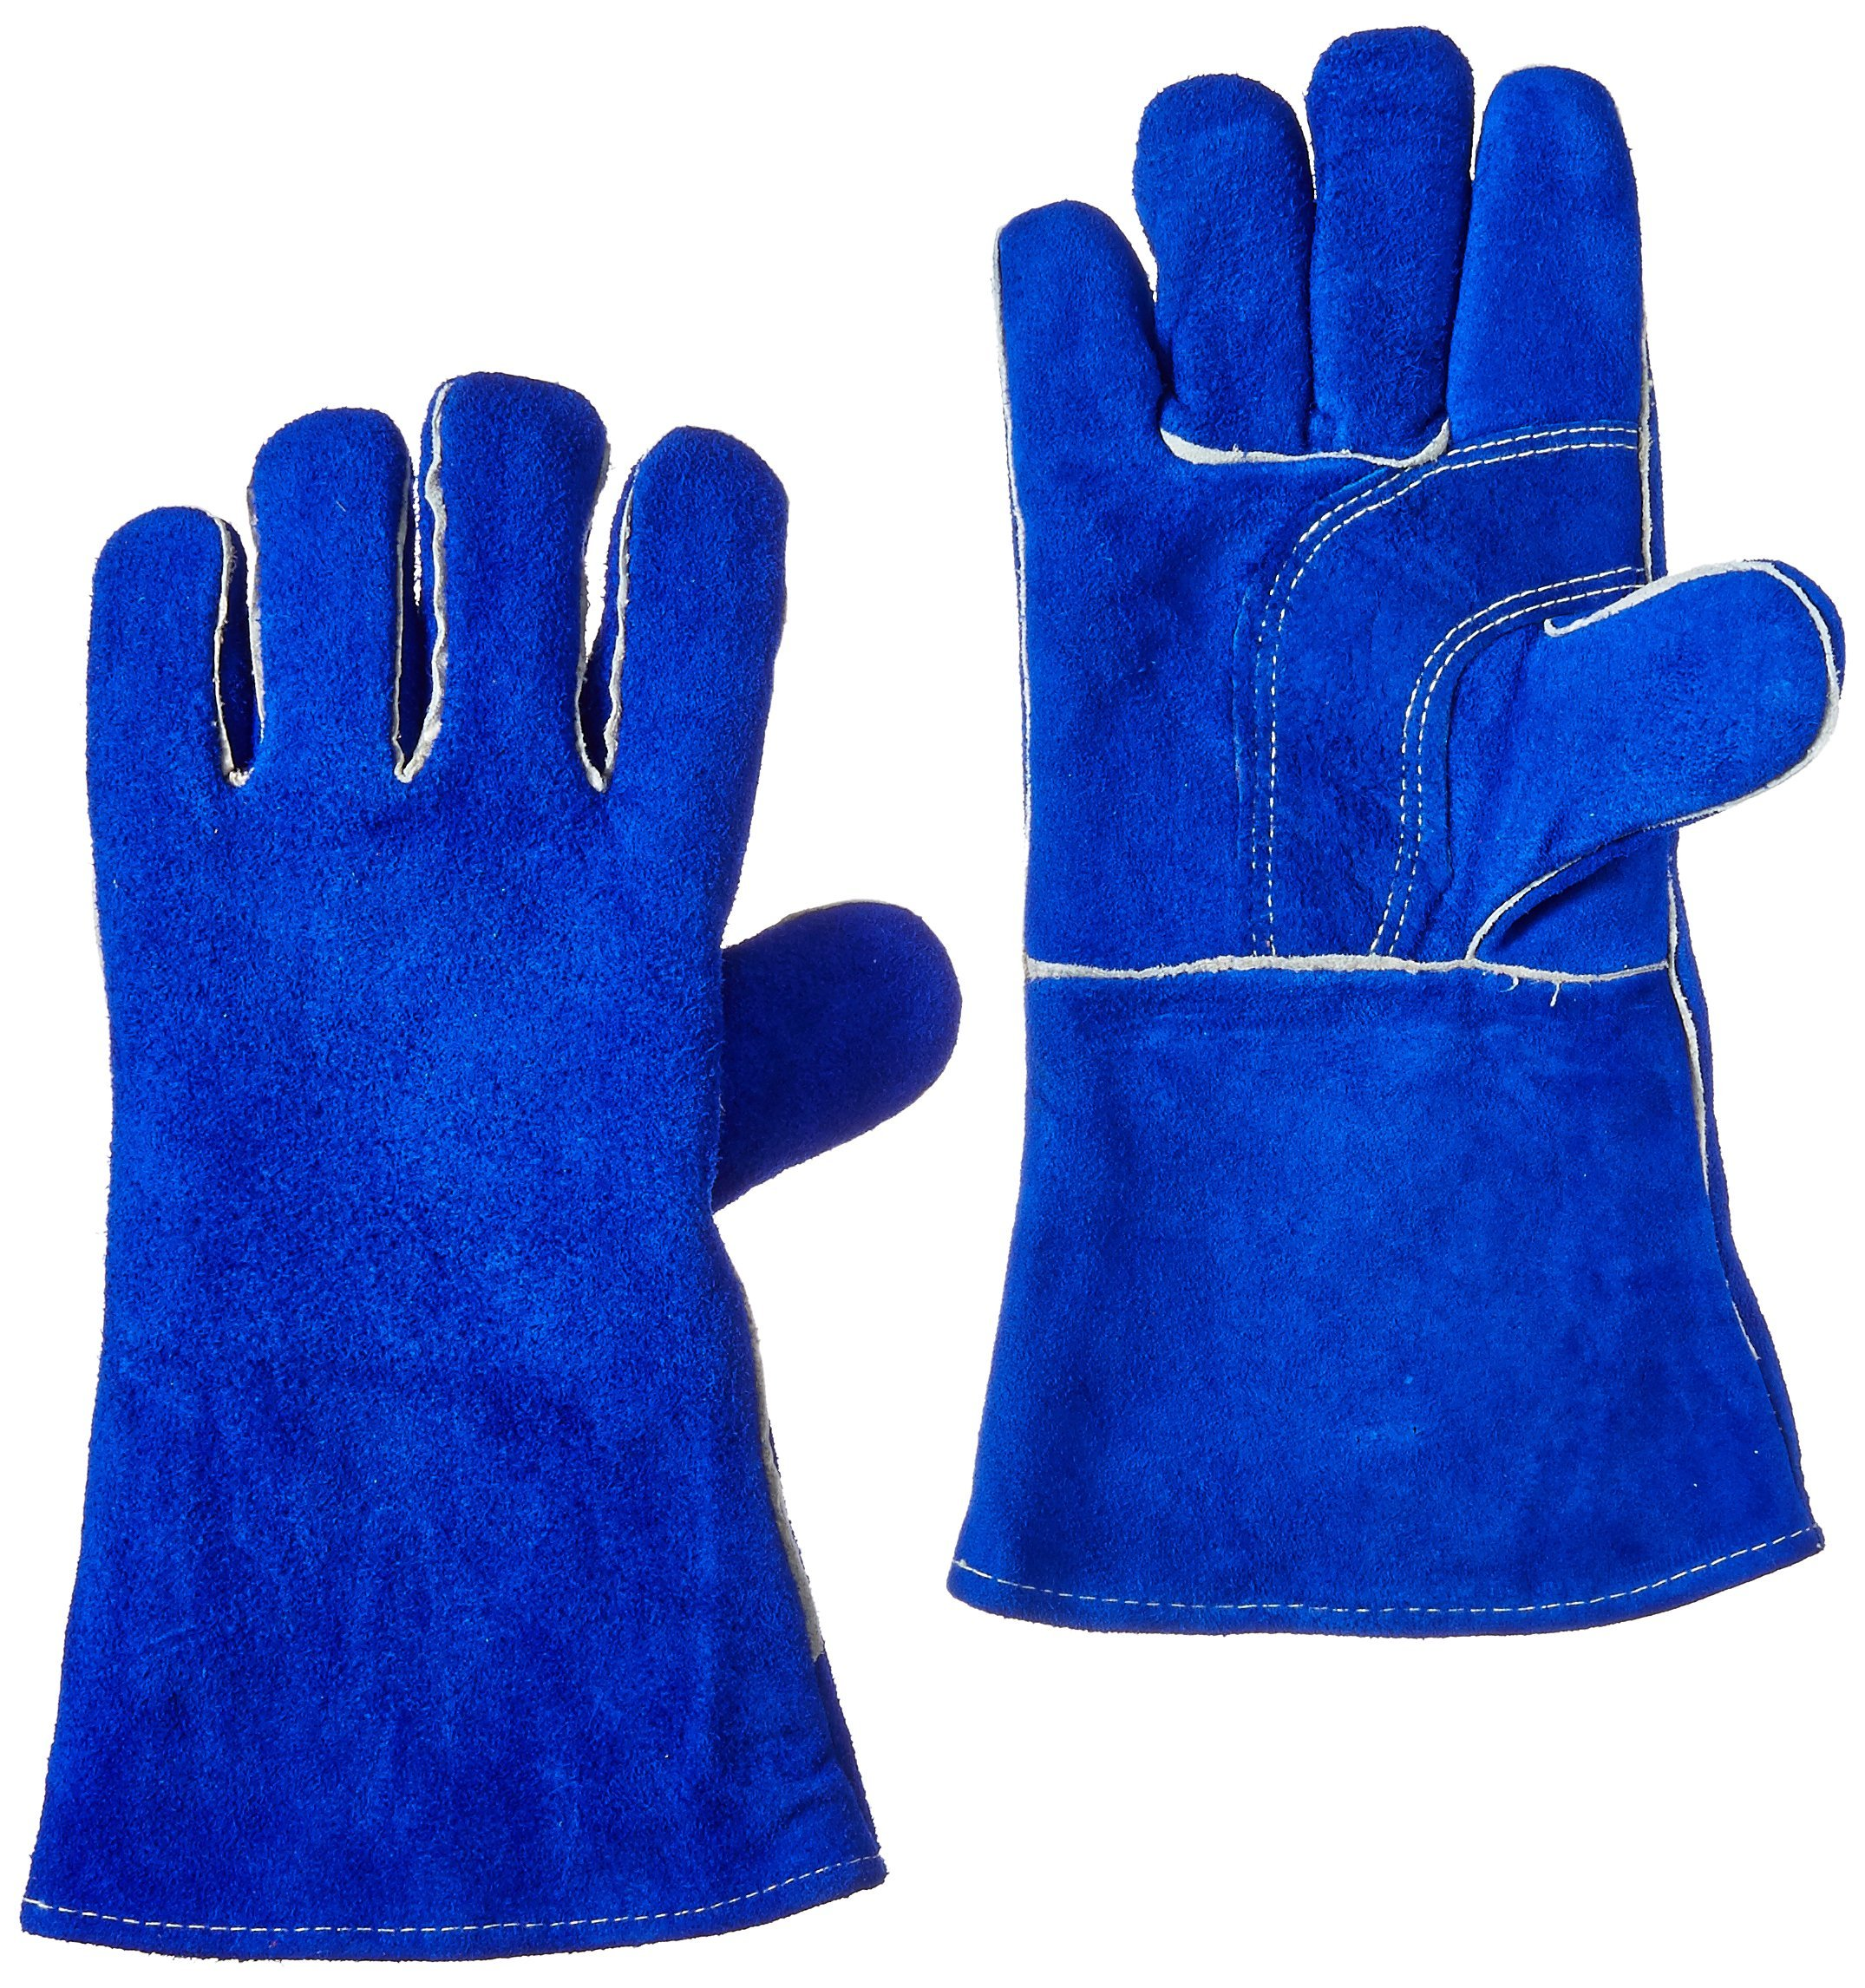 US Forge 400 Welding Gloves Lined Leather, Blue - 14'' by US Forge